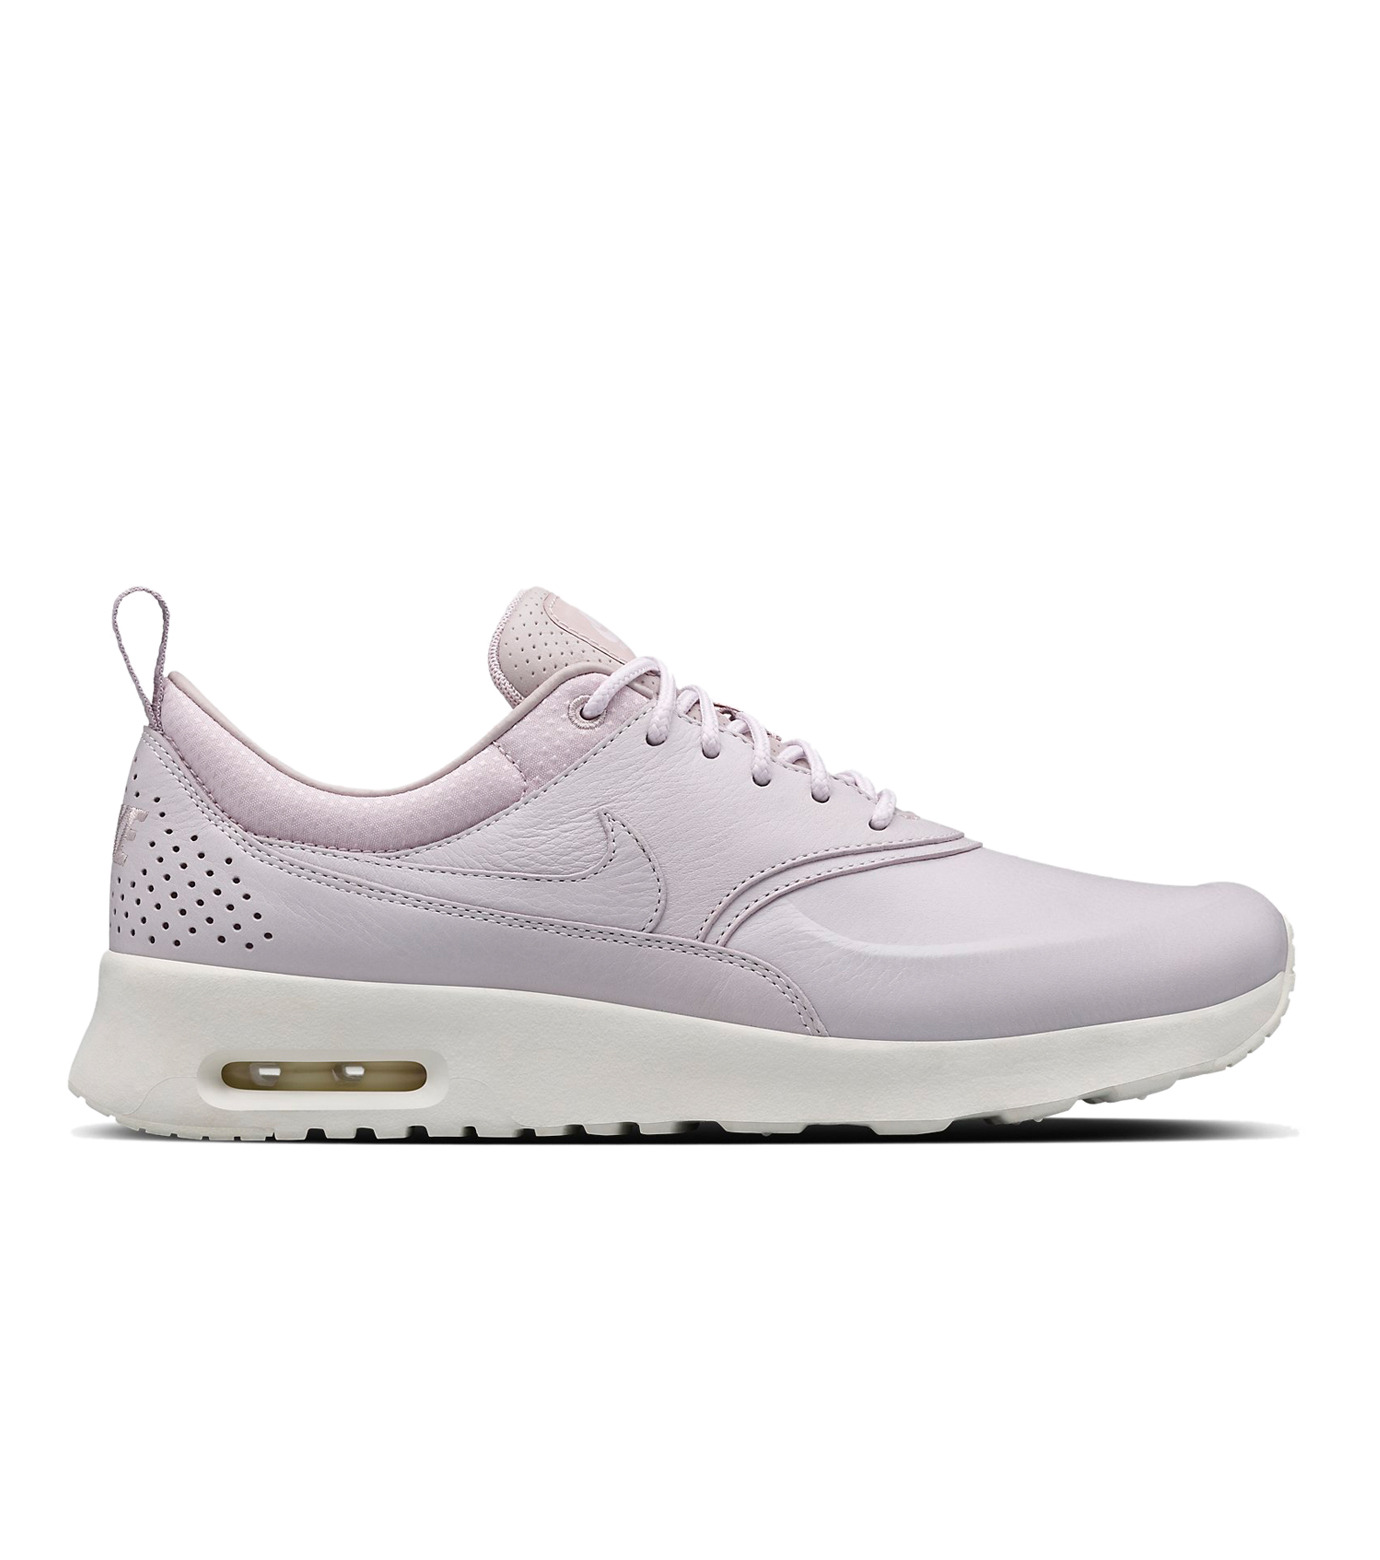 NIKE(ナイキ)のWMNS Air Max Thea Pinnacle-BEIGE(シューズ/shoes)-839611-500-52 拡大詳細画像1